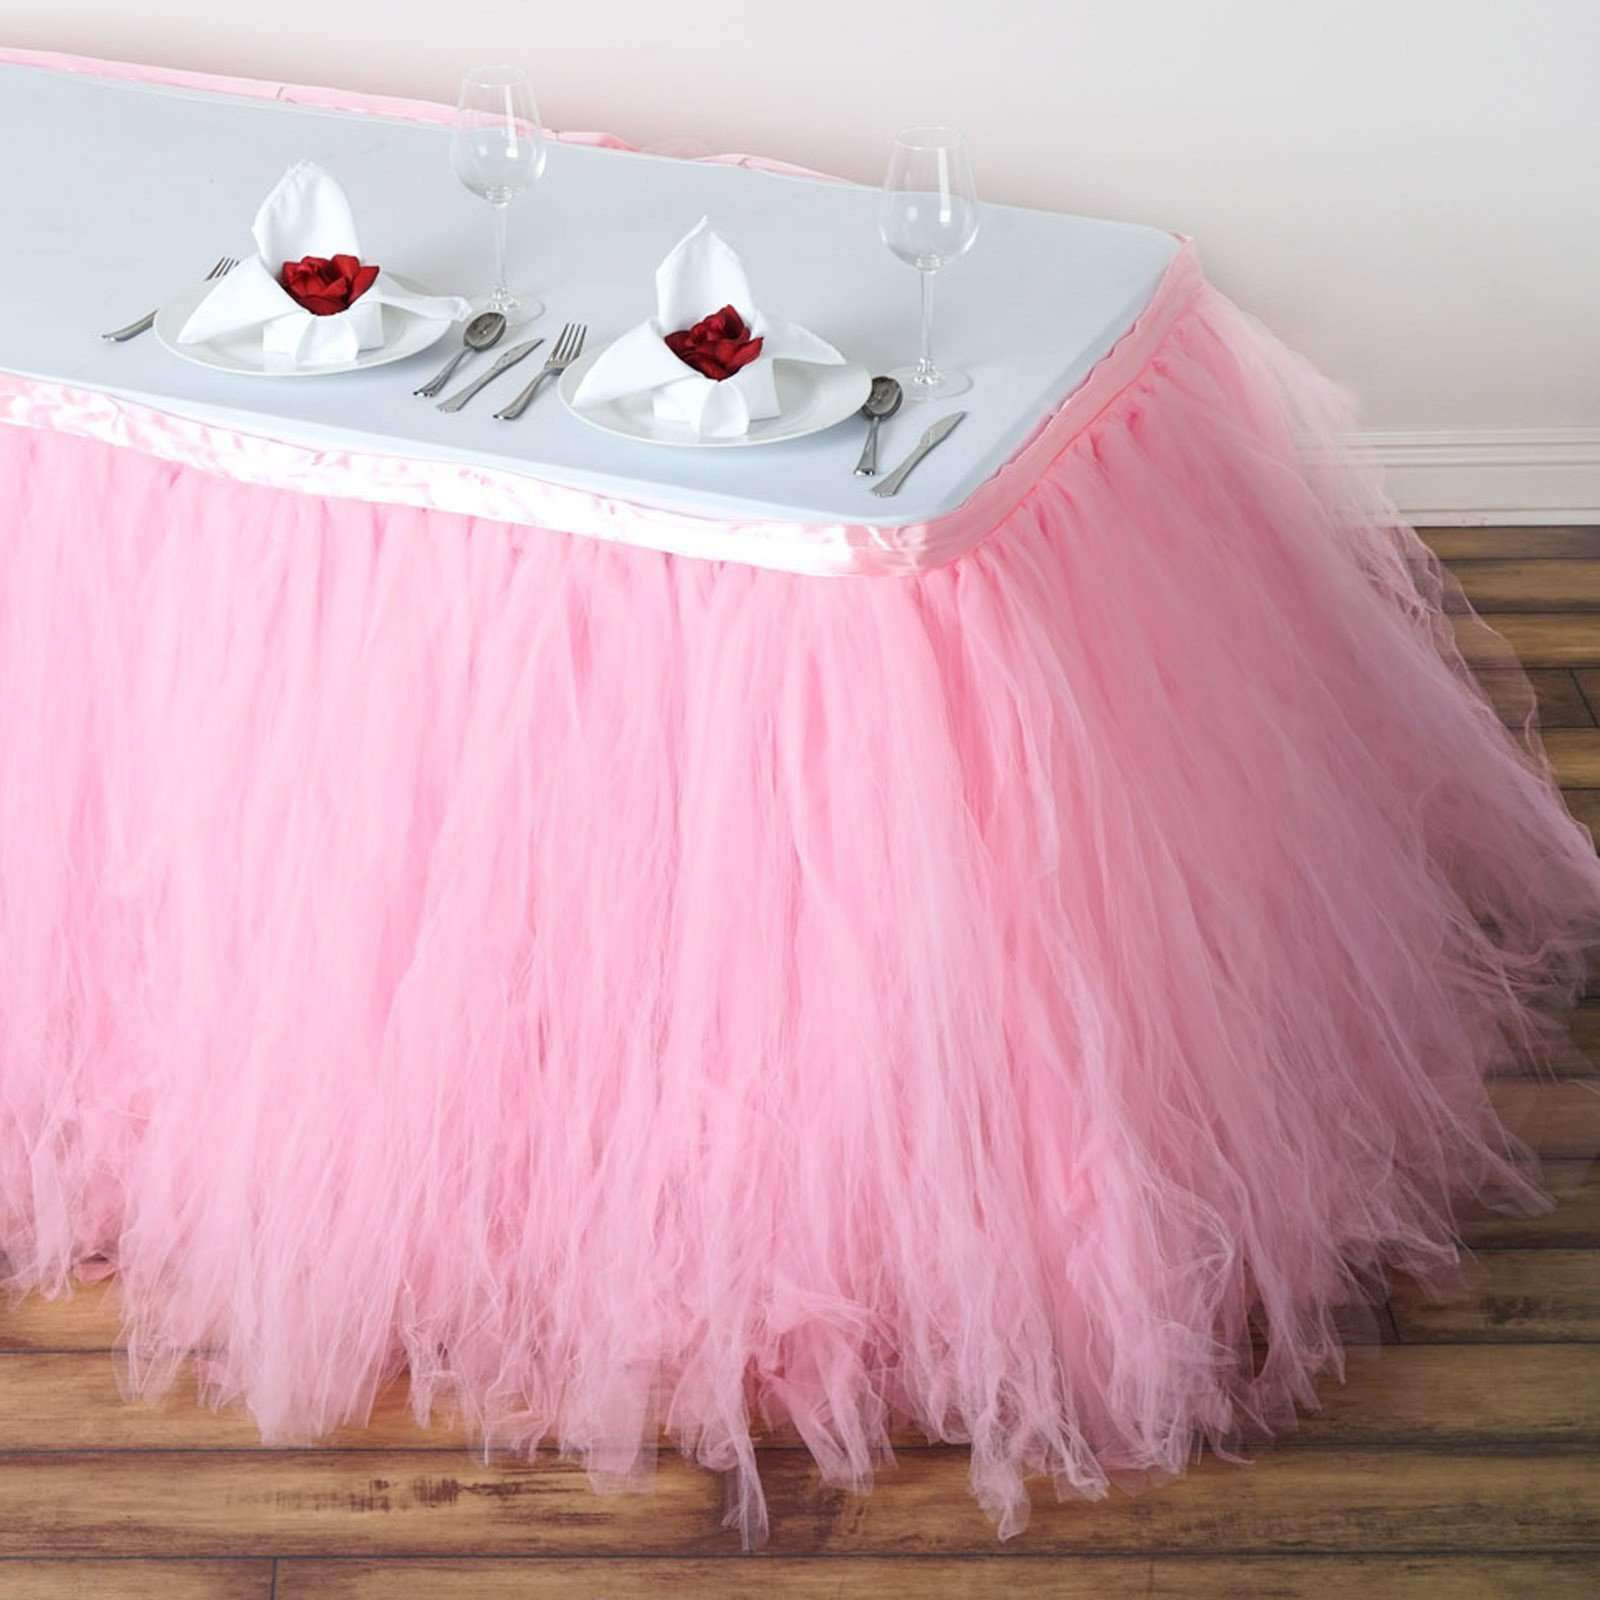 10 Colors Tulle Tutu Table Skirt Cover Table Cloth Birthday Wedding Party Decor